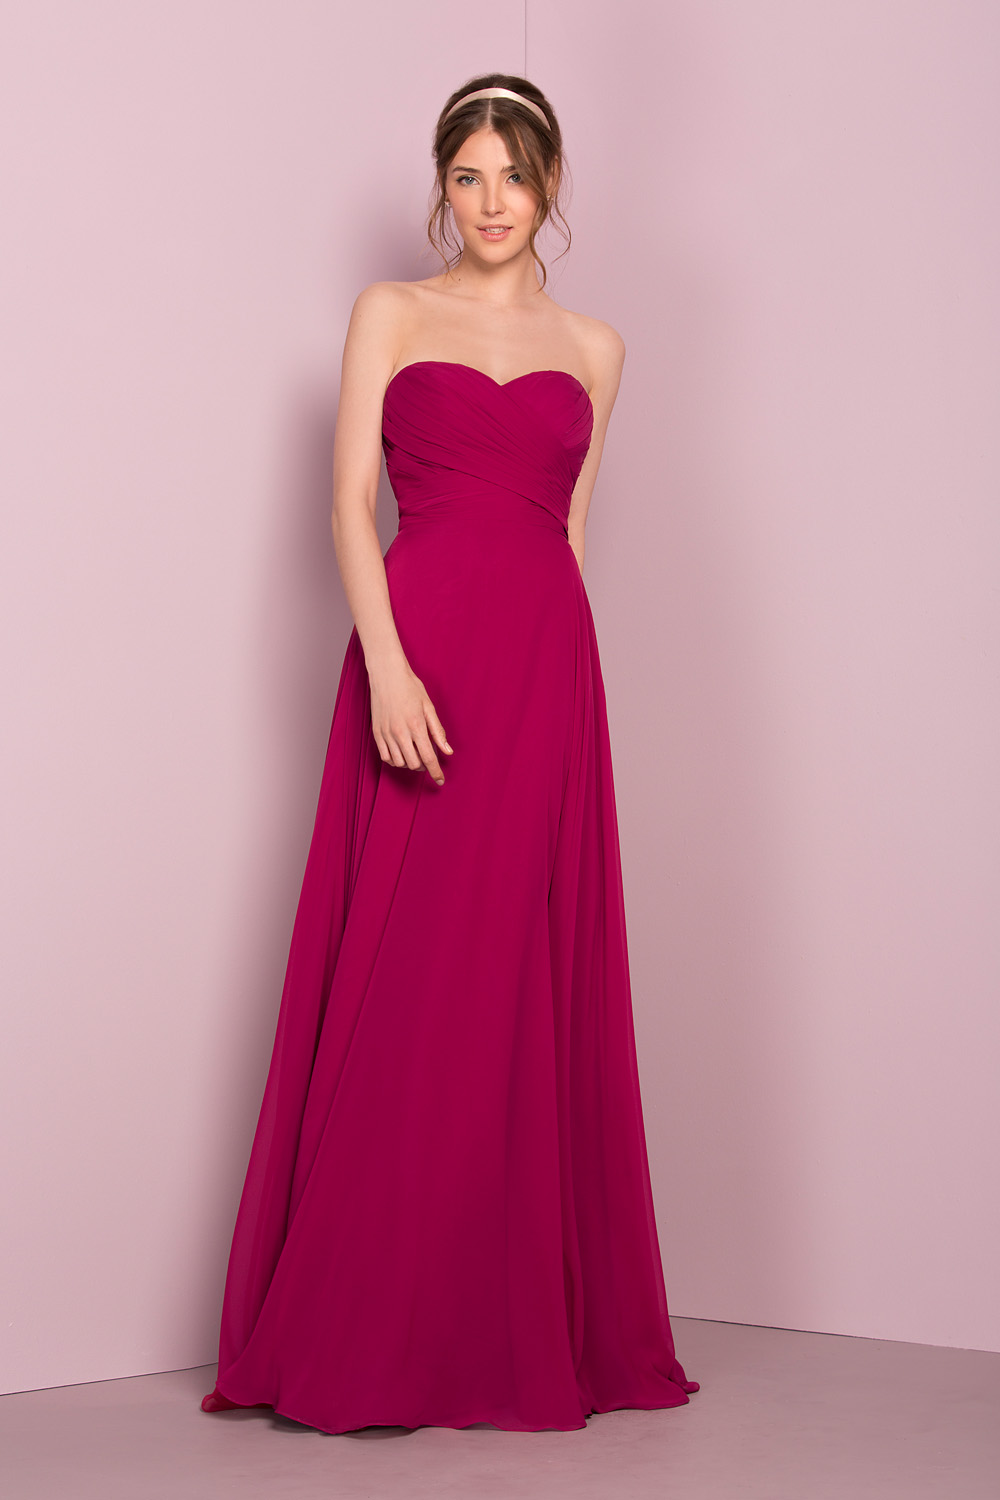 STYLE 18628 : THE SWEETHEART